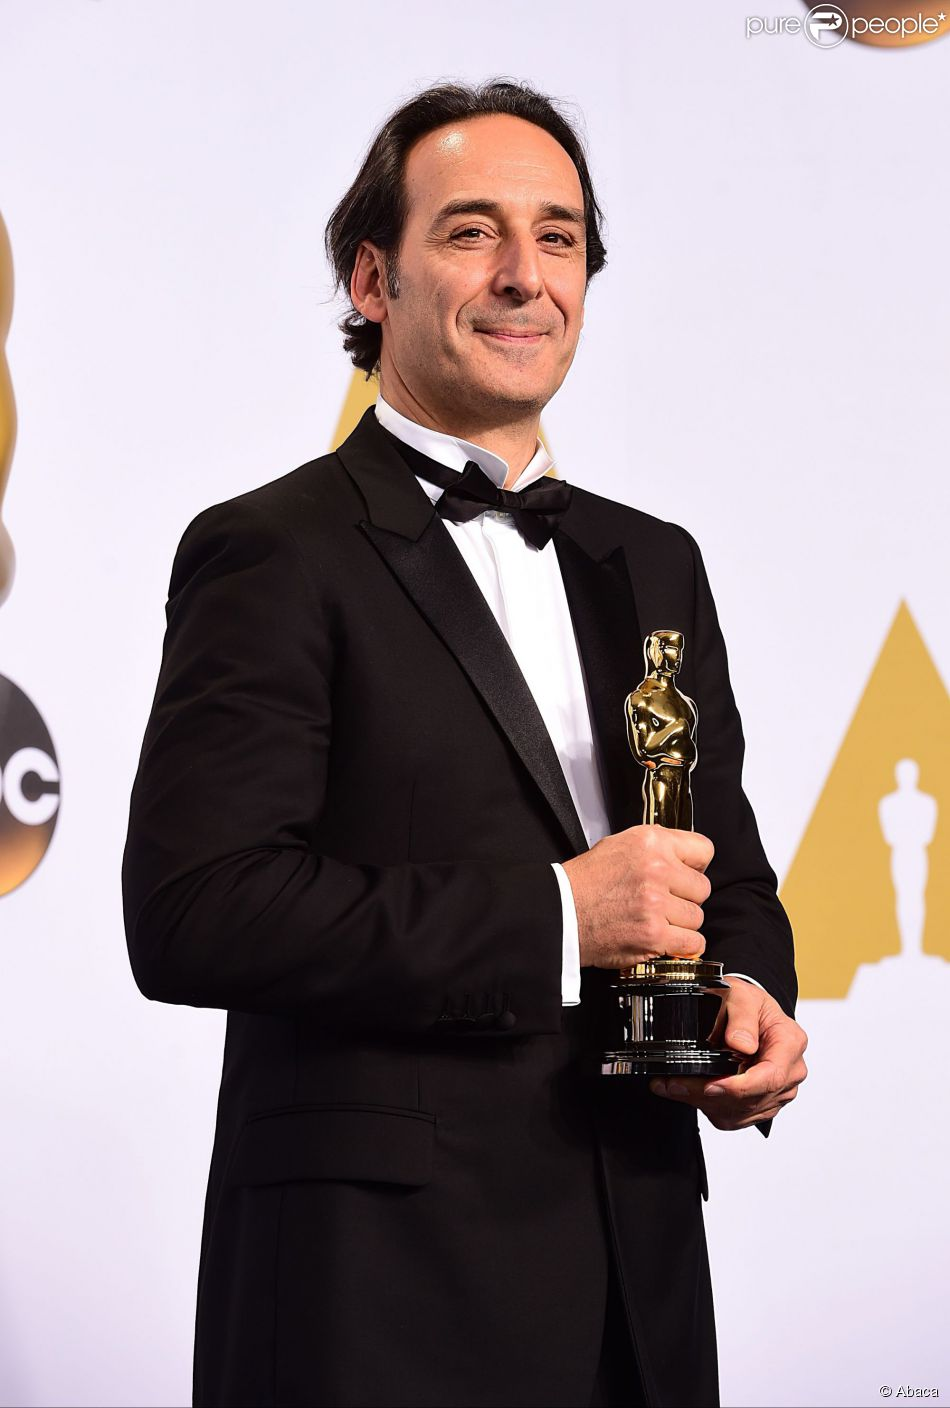 Alexandre Desplat with the Original Score Award for 'The Grand Budapest Hotel', in the press room of the 87th Academy Awards held at the Dolby Theatre in Hollywood, Los Angeles, CA, USA, February 22, 2015. Photo by Ian West/PA Wire/ABACAPRESS.COM23/02/2015 - Los Angeles